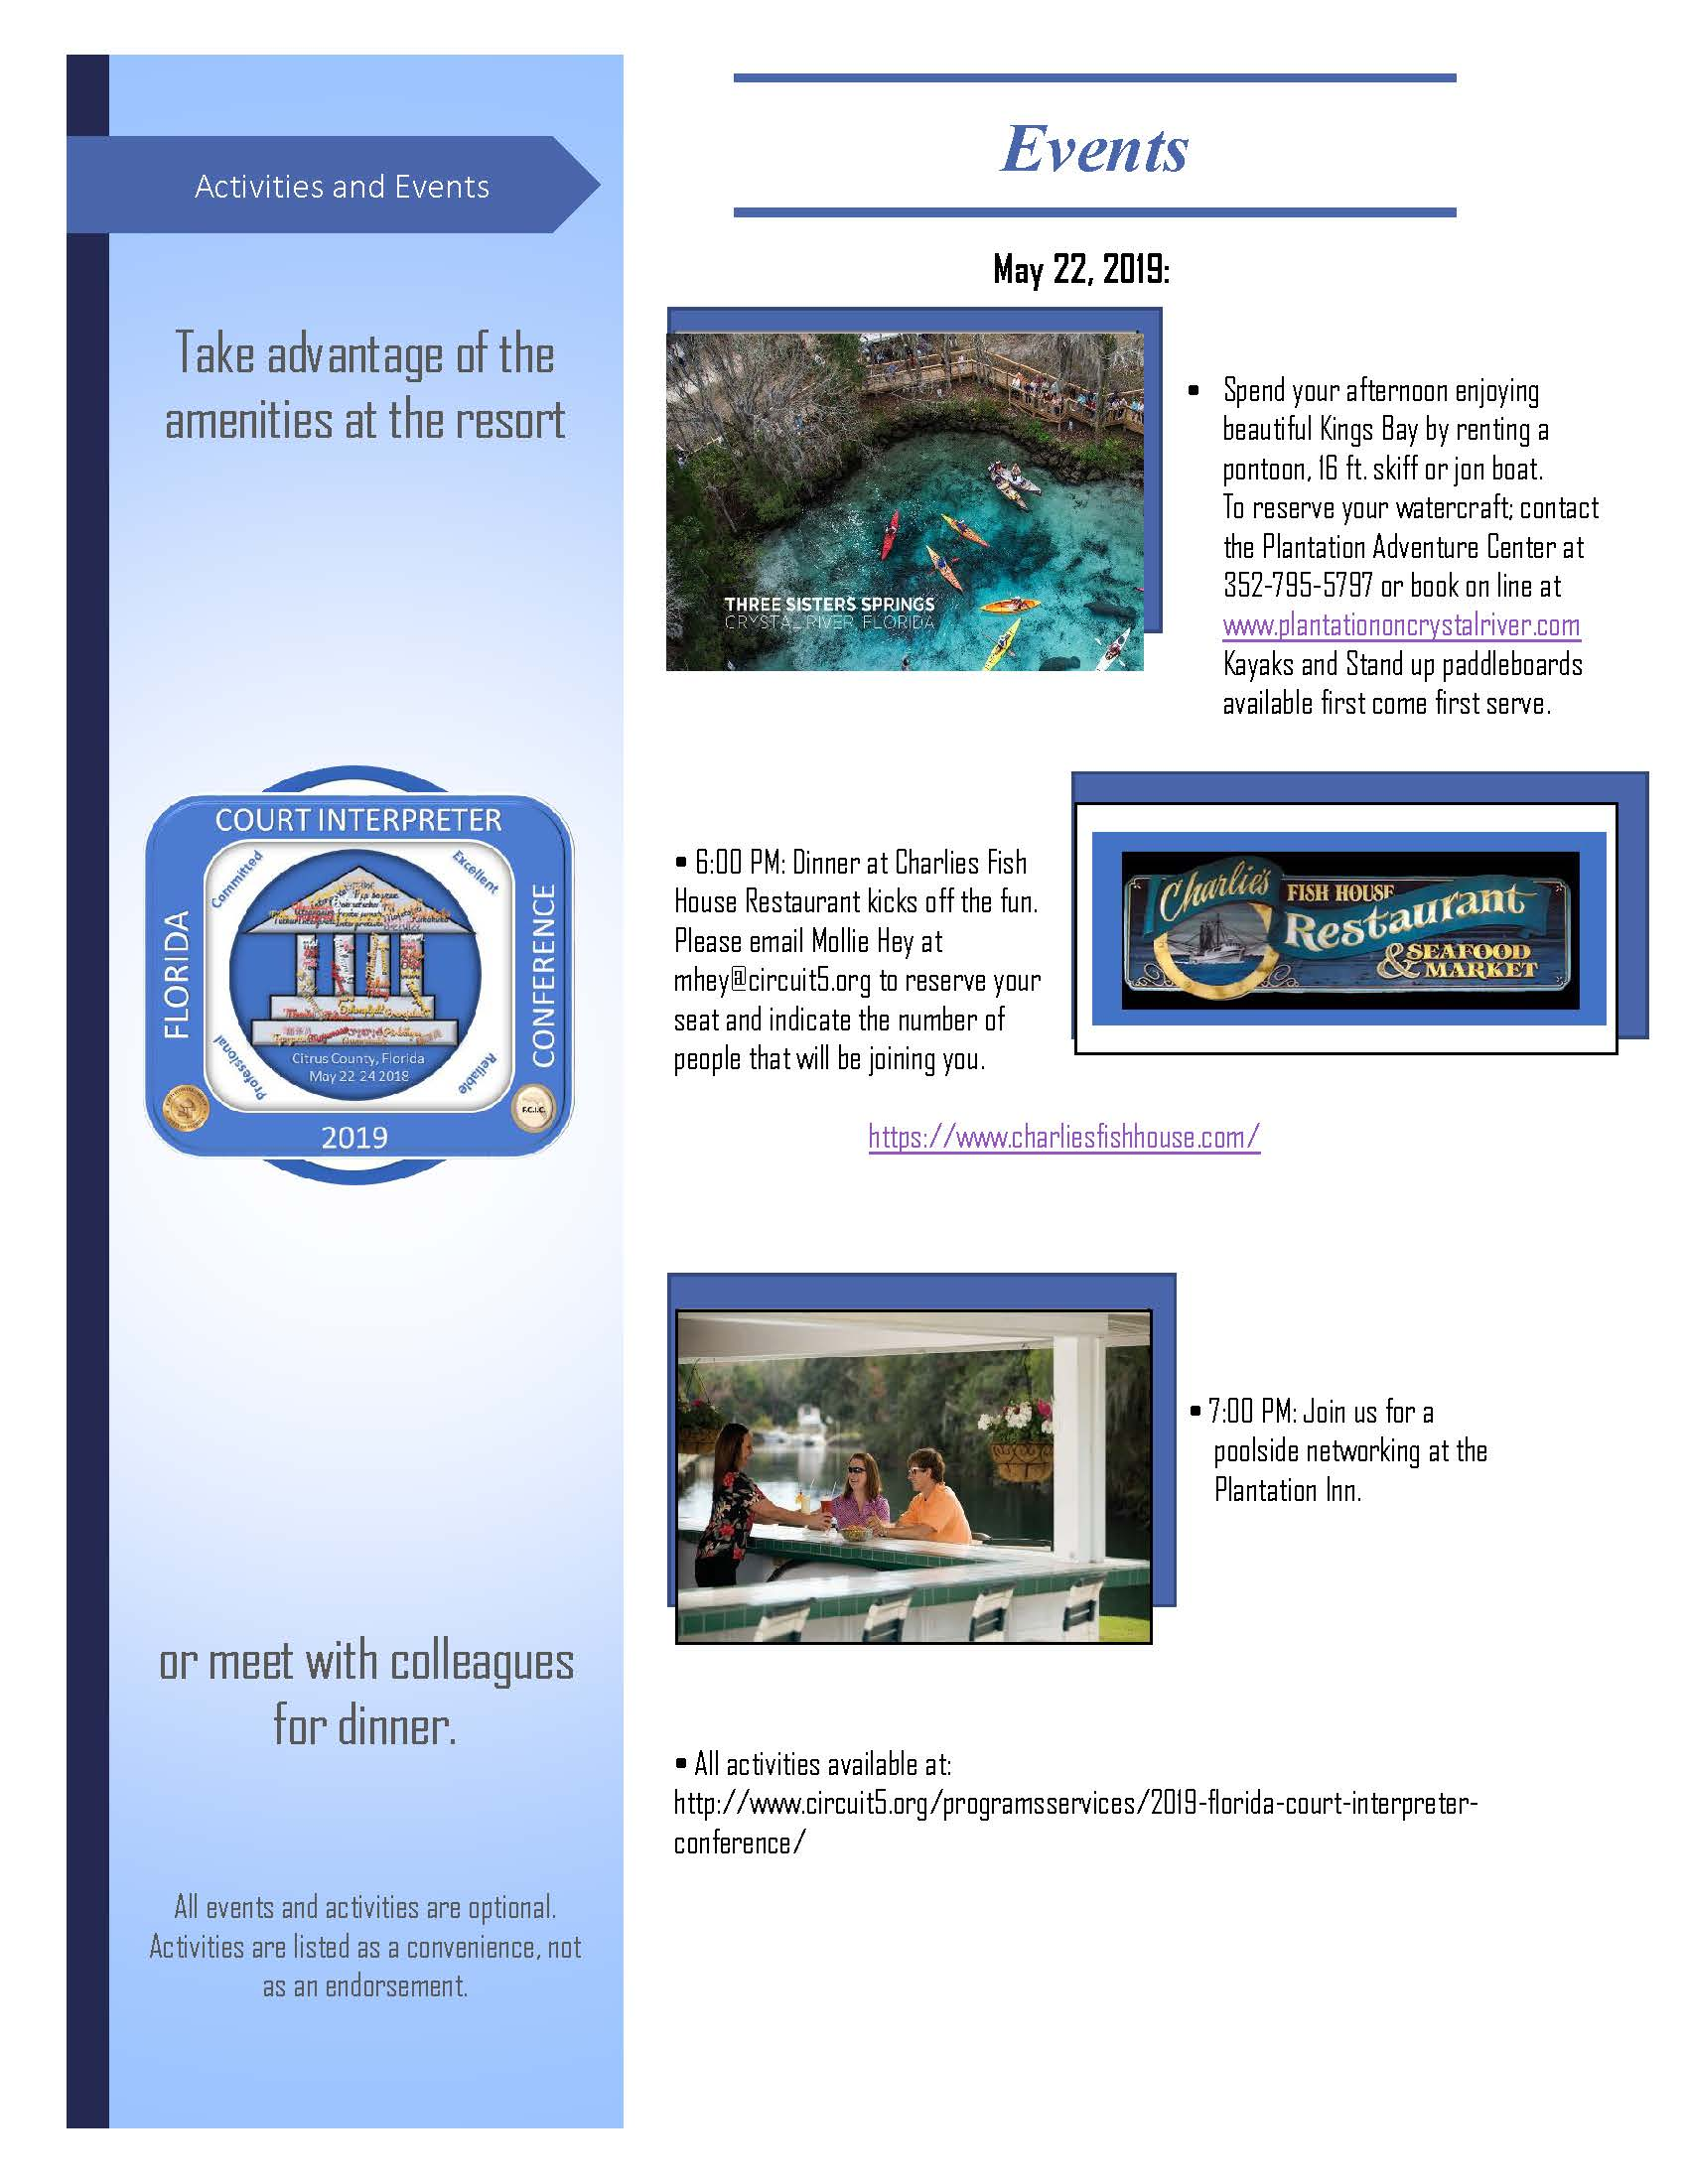 events-and-activities-1_page_1